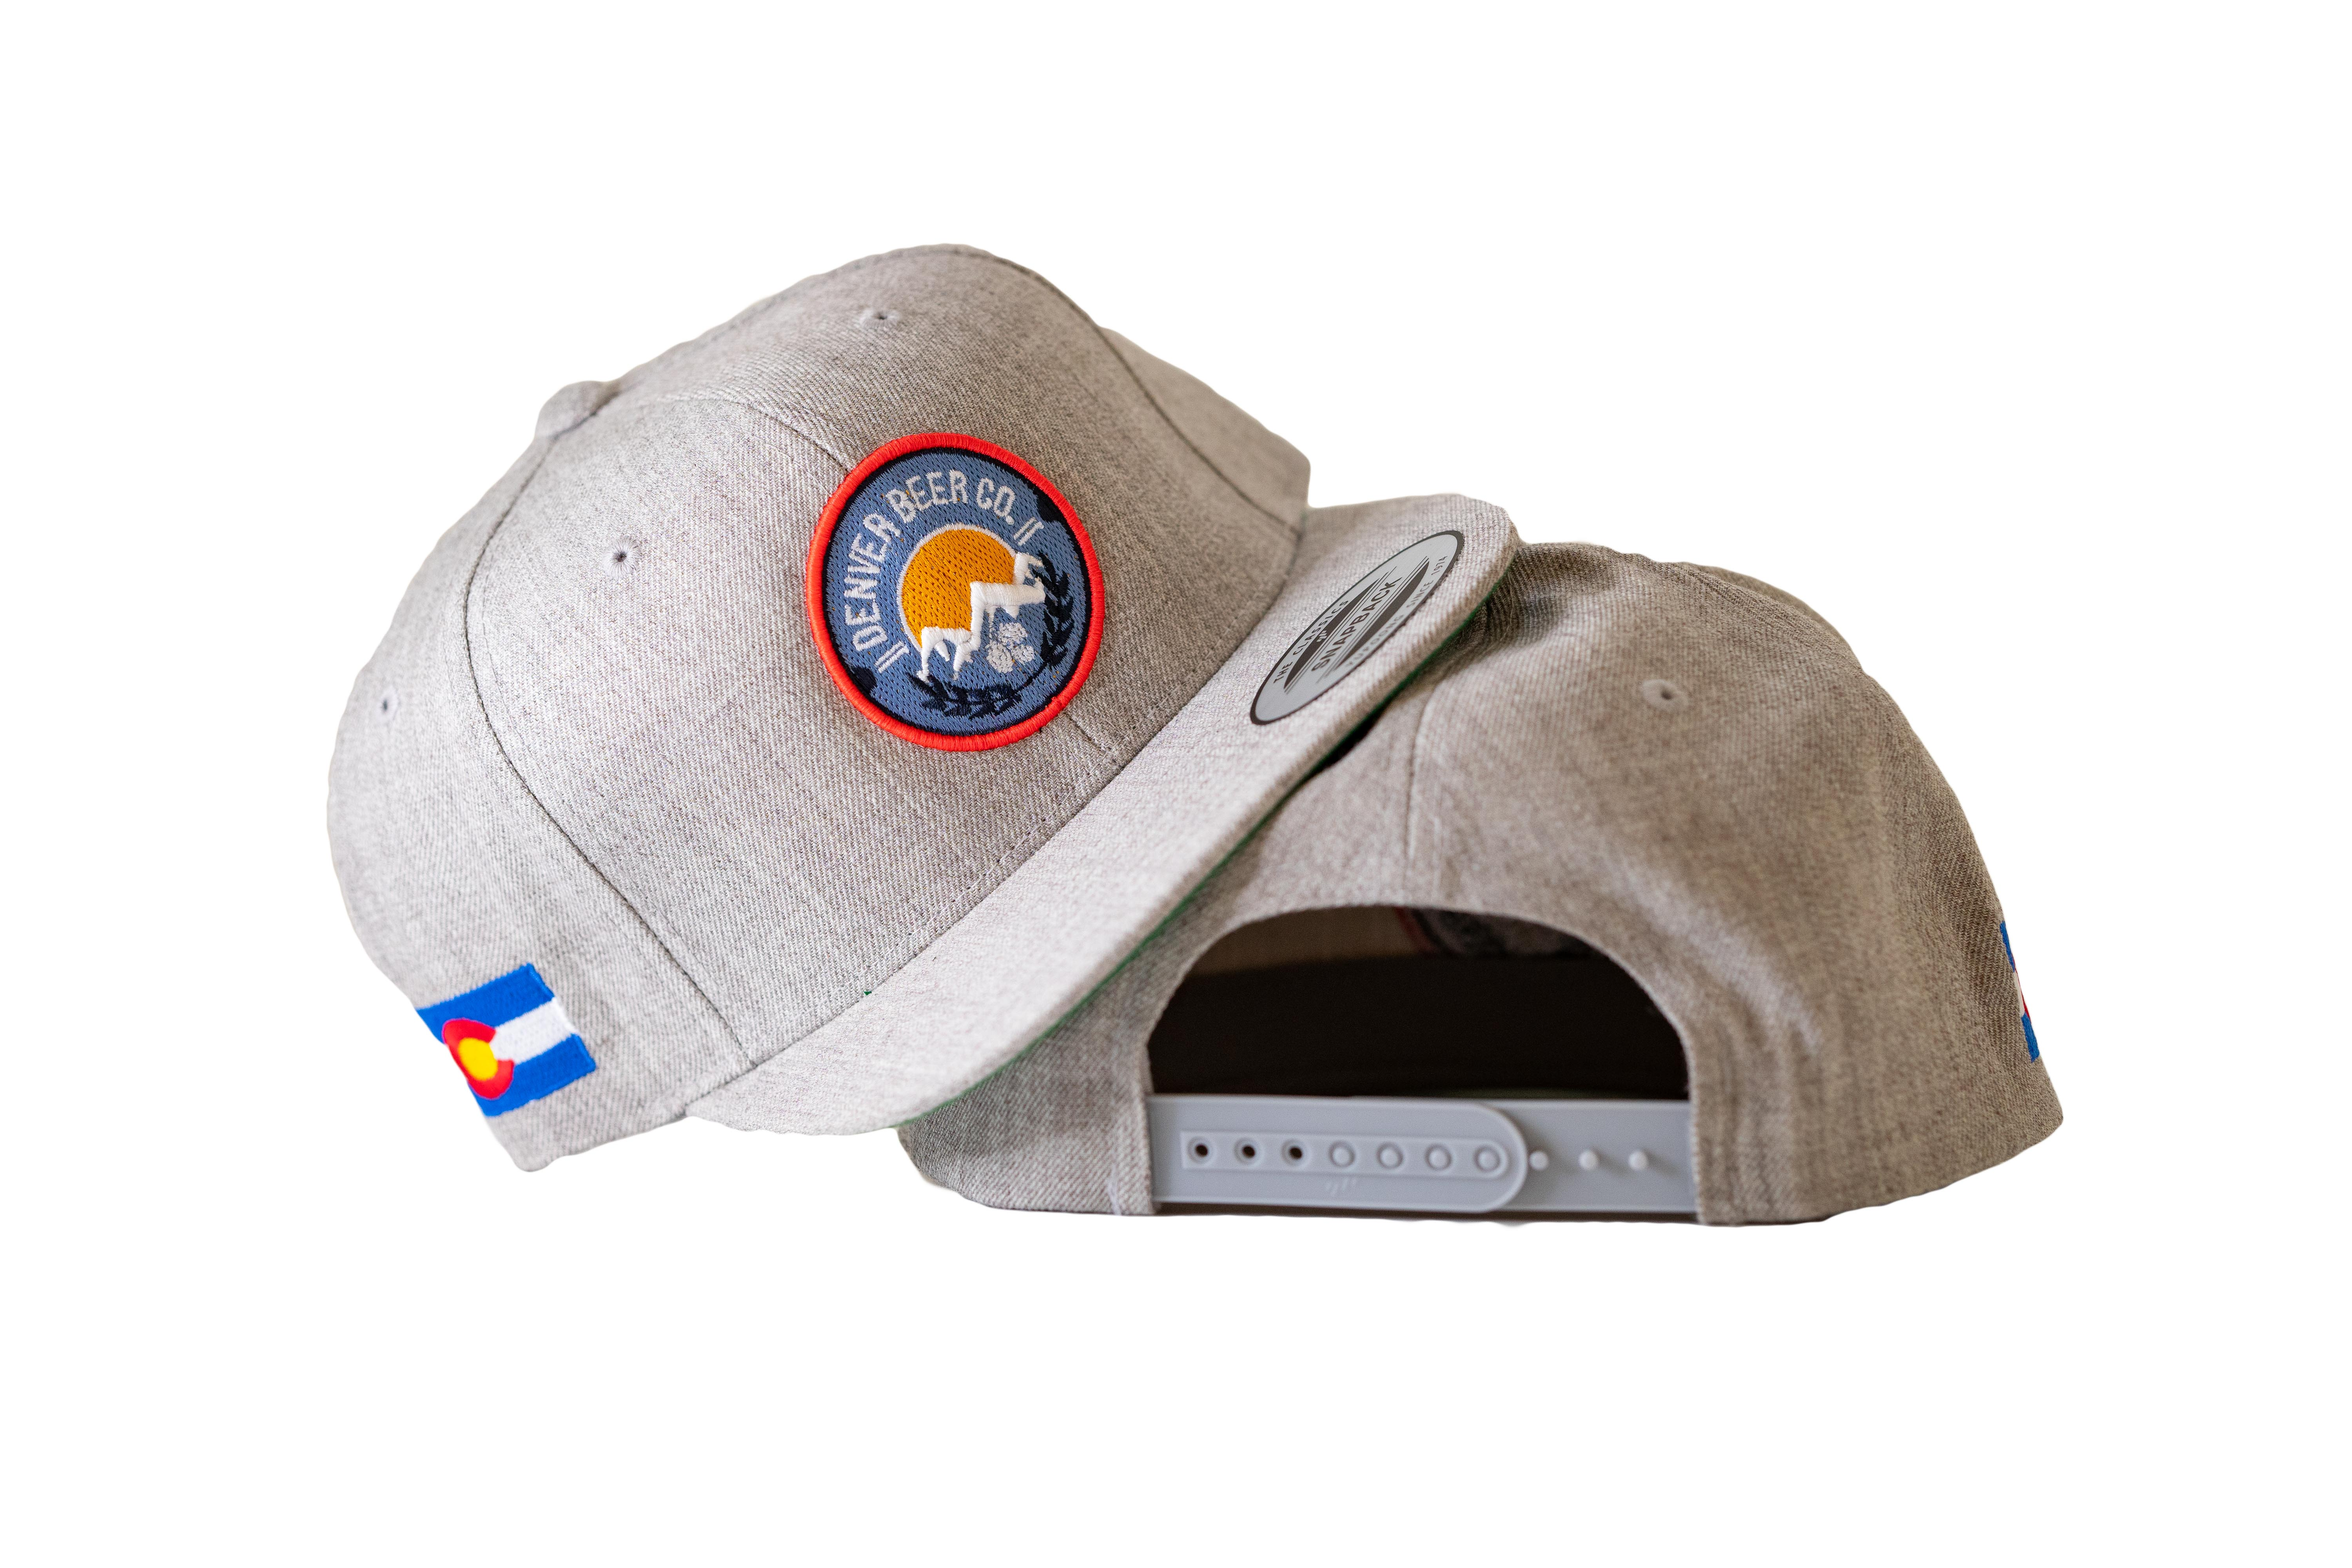 Denver Beer Co Flat Brim Hat, Snap Back, Gray Twill, with Raised Embroidery Twill Snap-back_MAIN